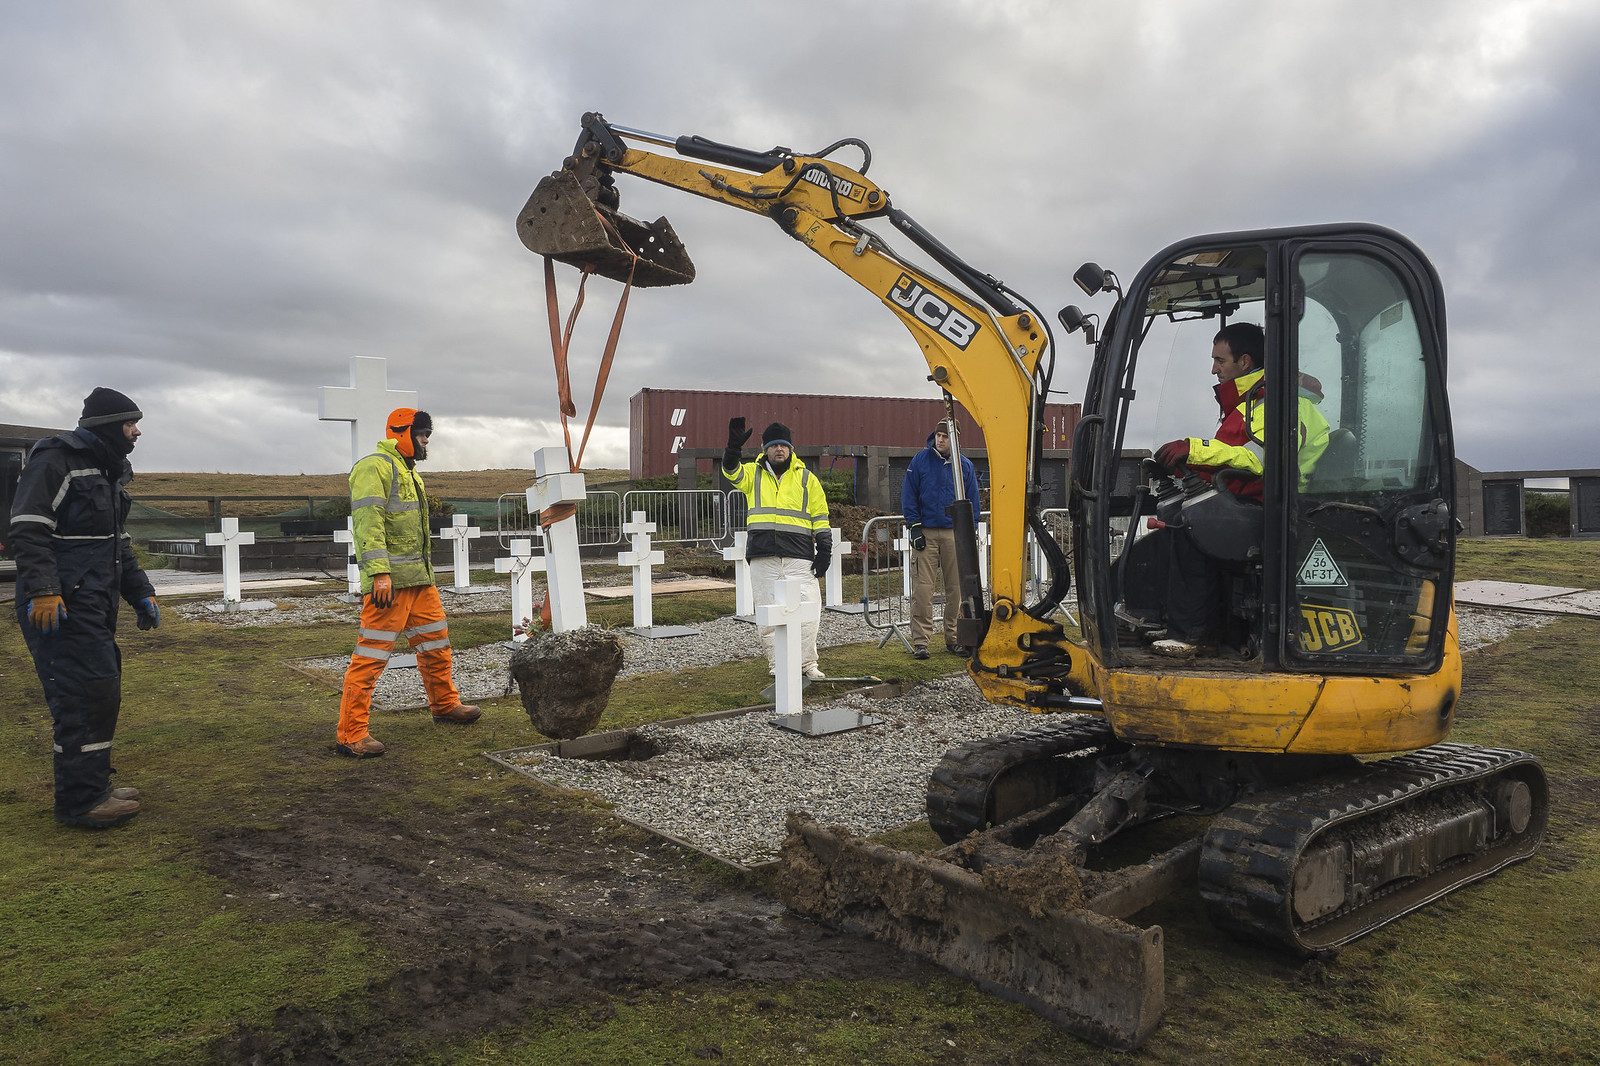 A mechanical digger clearing grave sites in a cemetery in order to identify the deceased to confirm identity